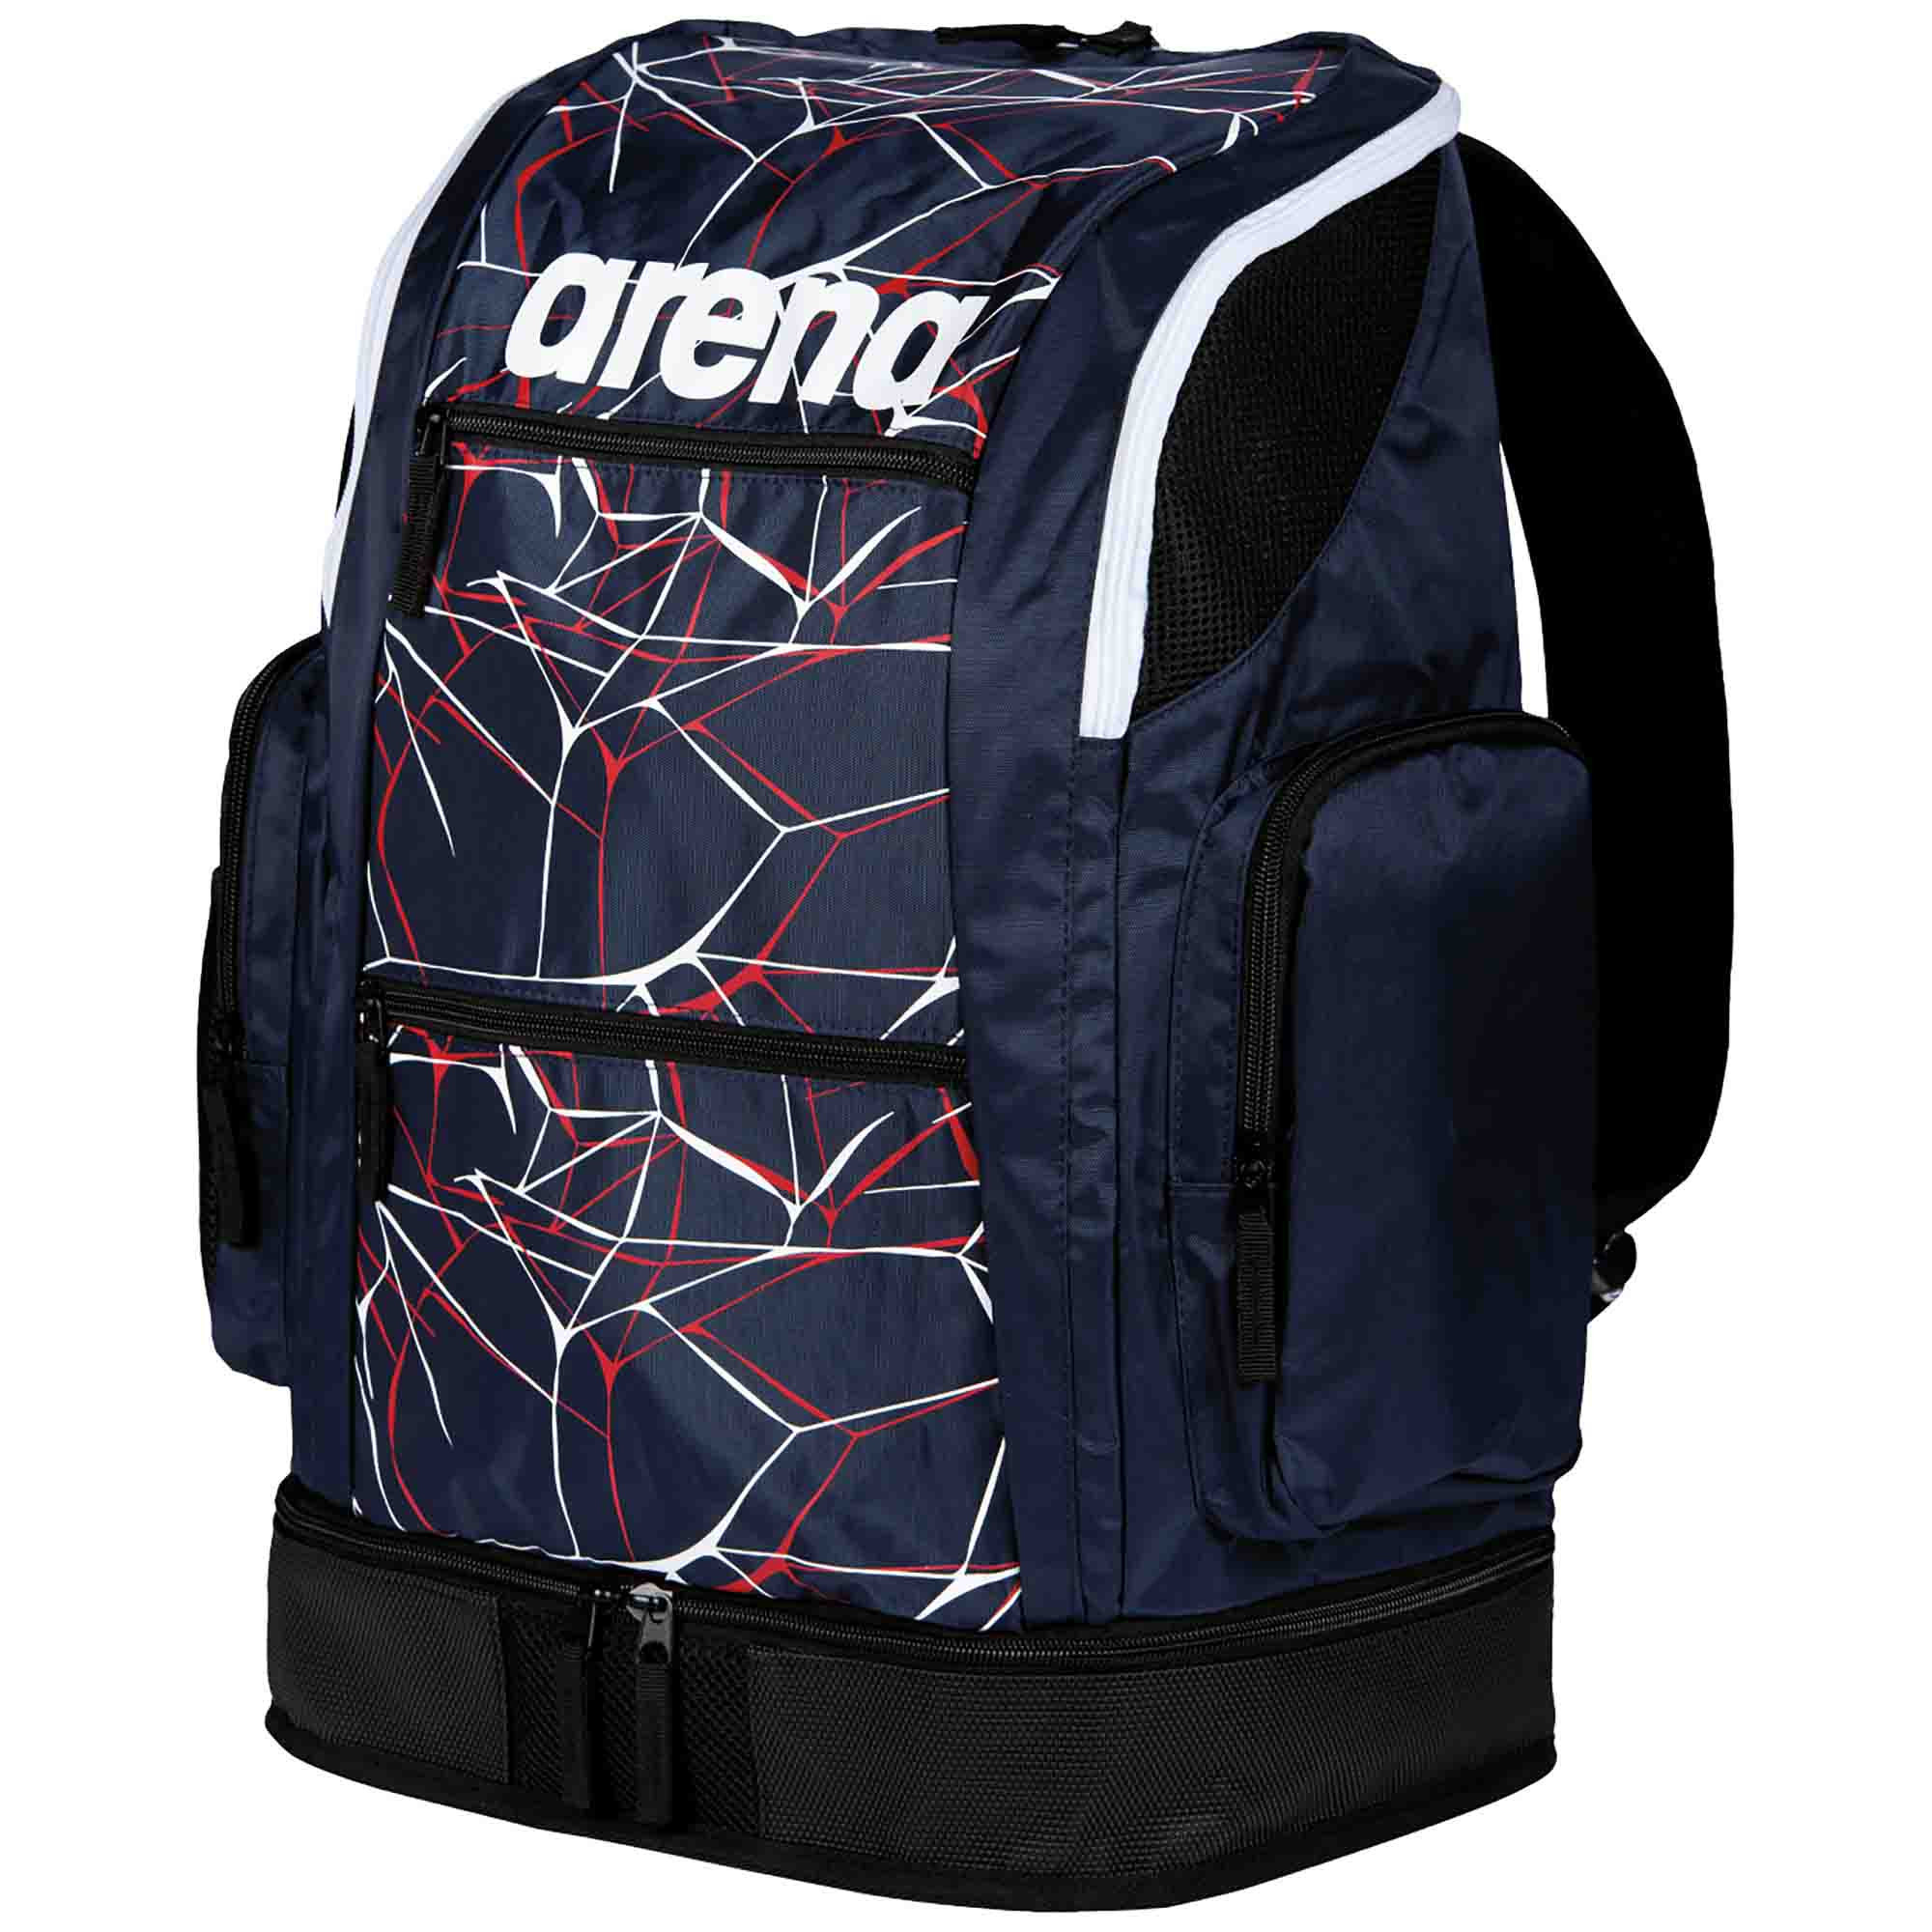 Arena Water Spiky 2 Large Backpack | Travel bags